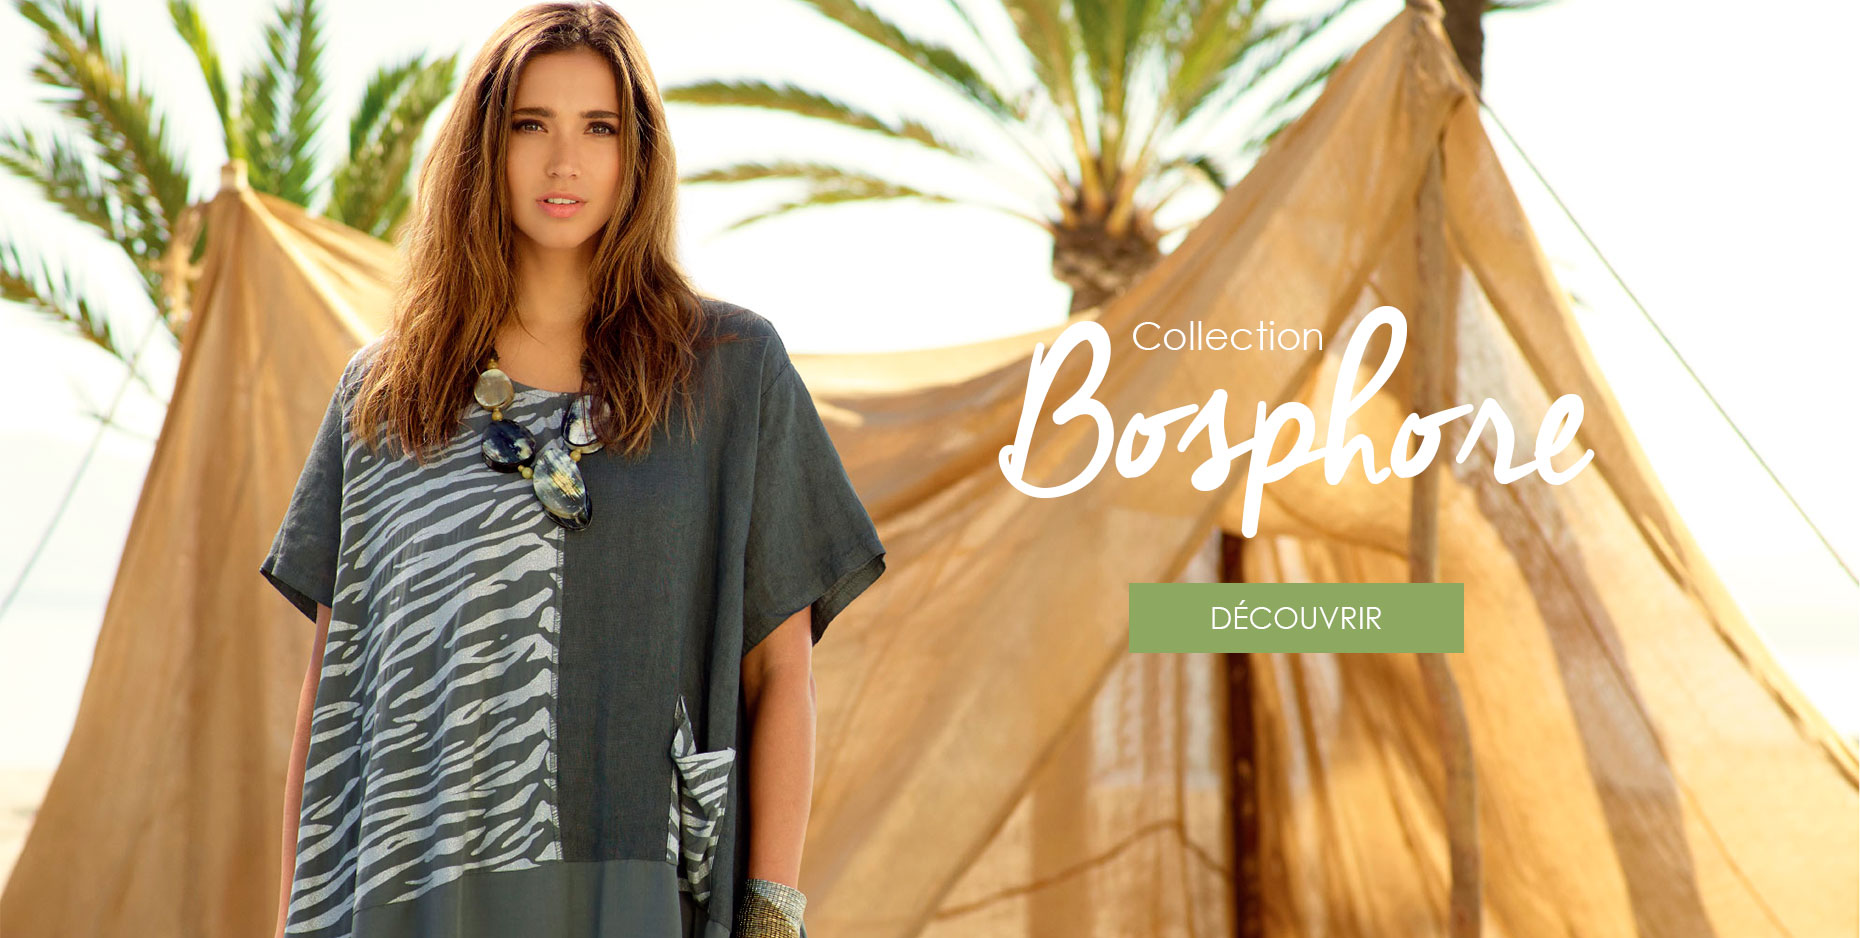 Collection Bosphore